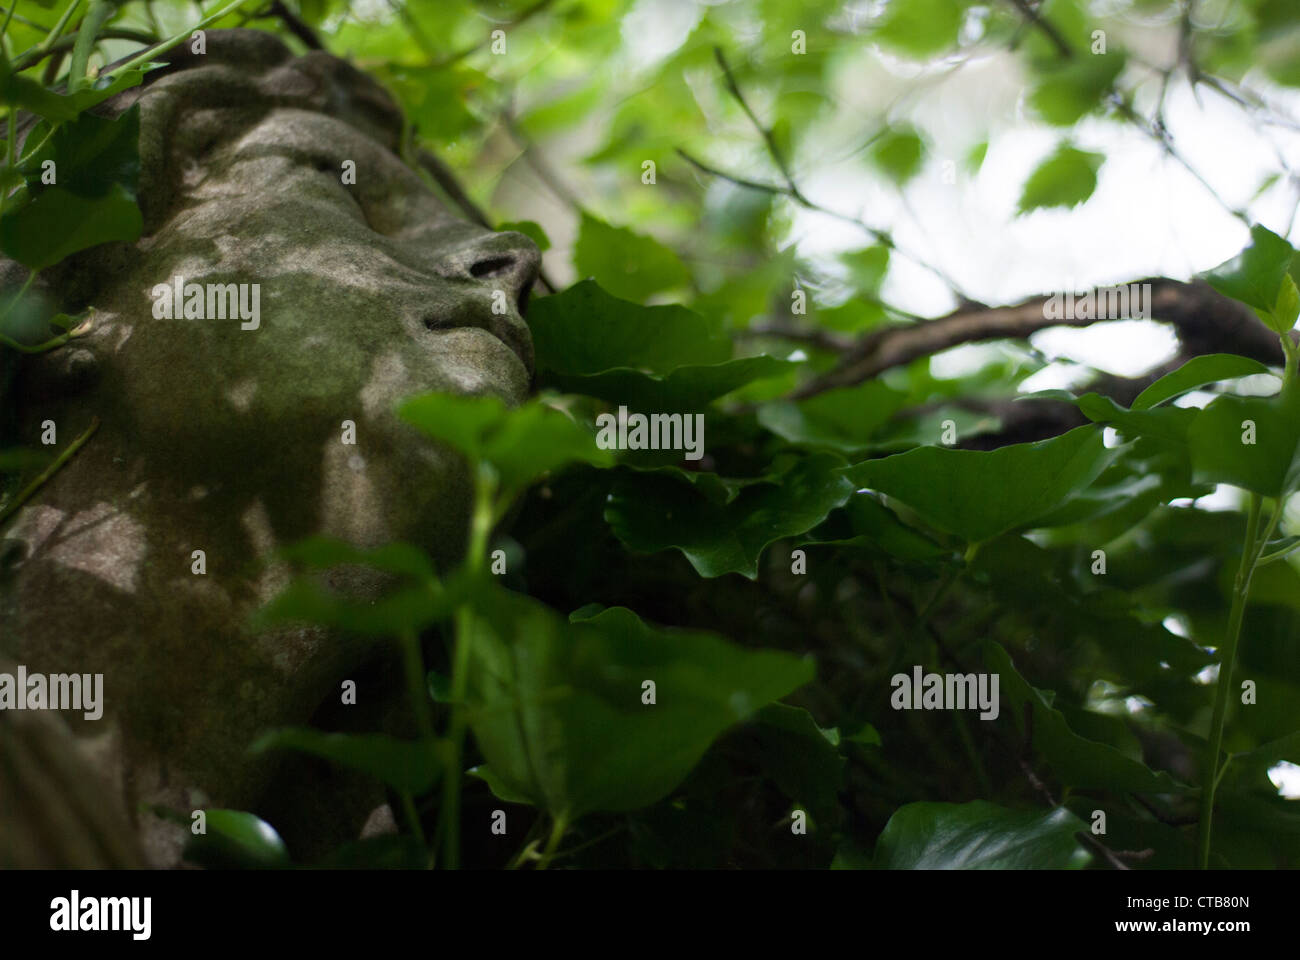 Closeup of a stone carving of an angels face with a serene, reflective expression looking upward through overgrown - Stock Image